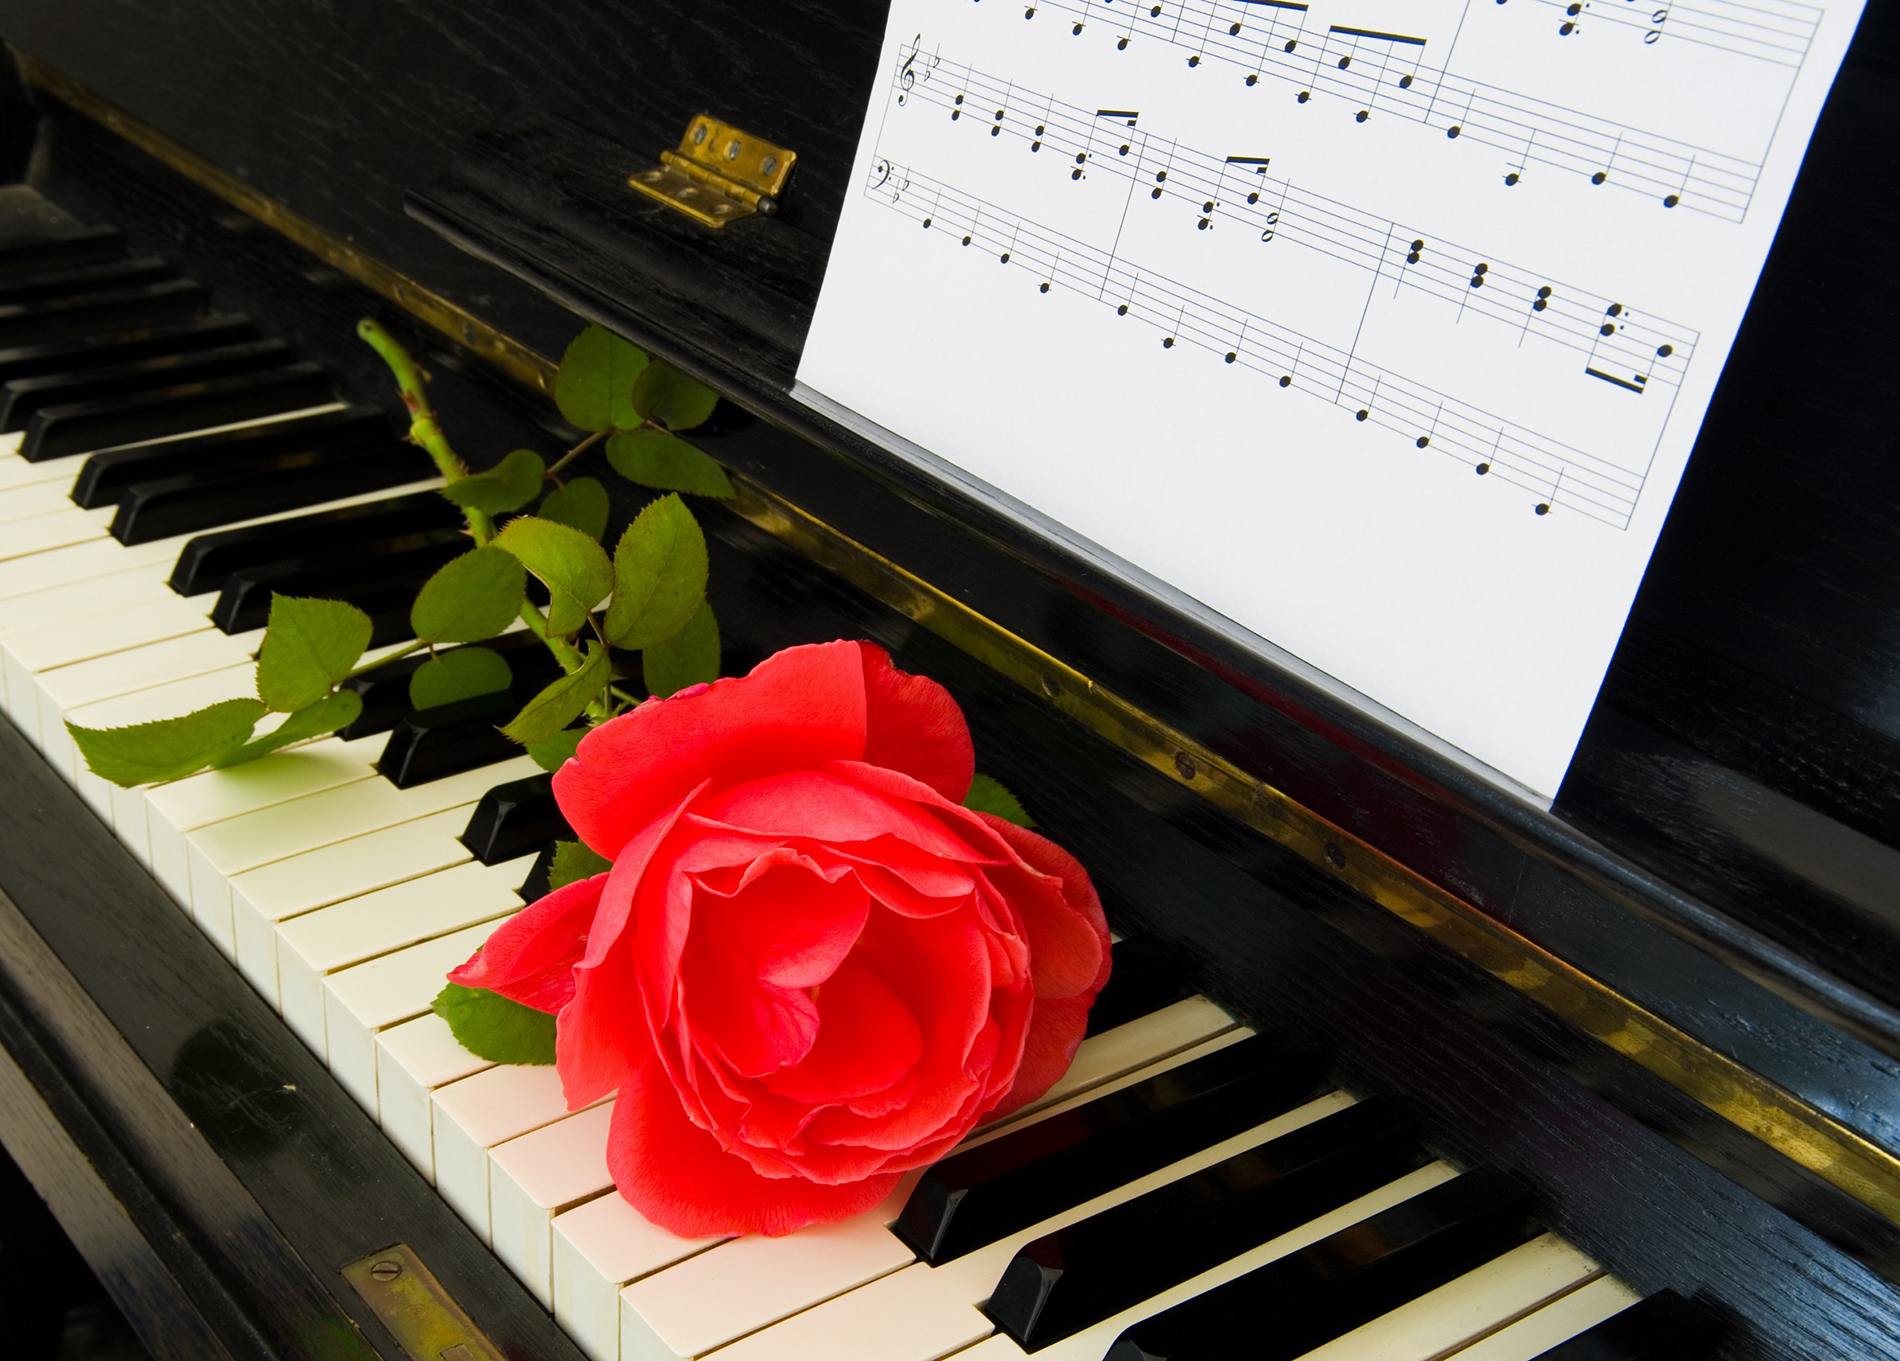 Music on the piano and a red rose 52814